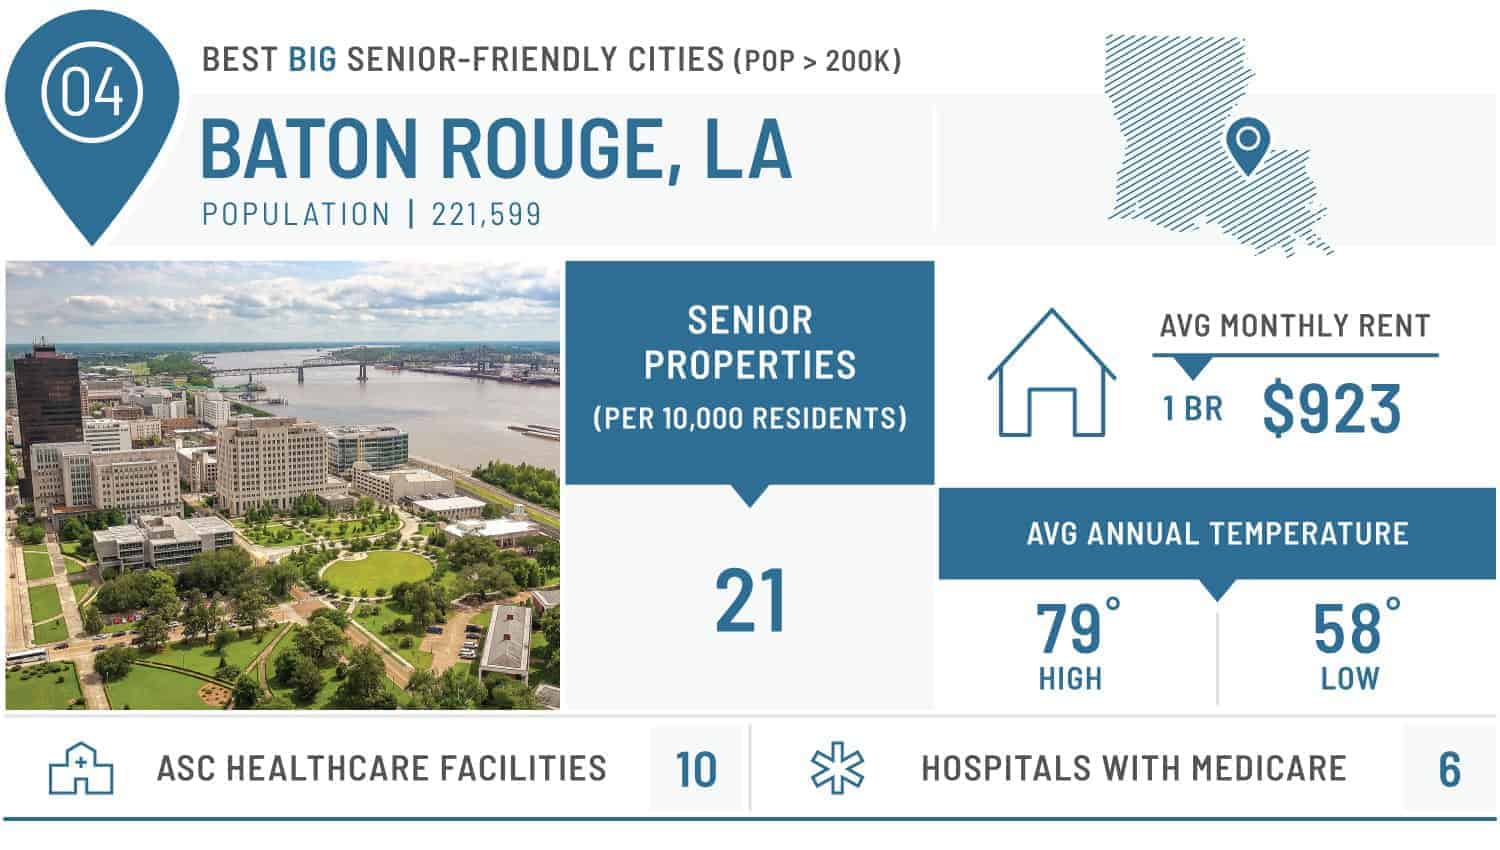 visual of the best large city for seniors - baton rouge